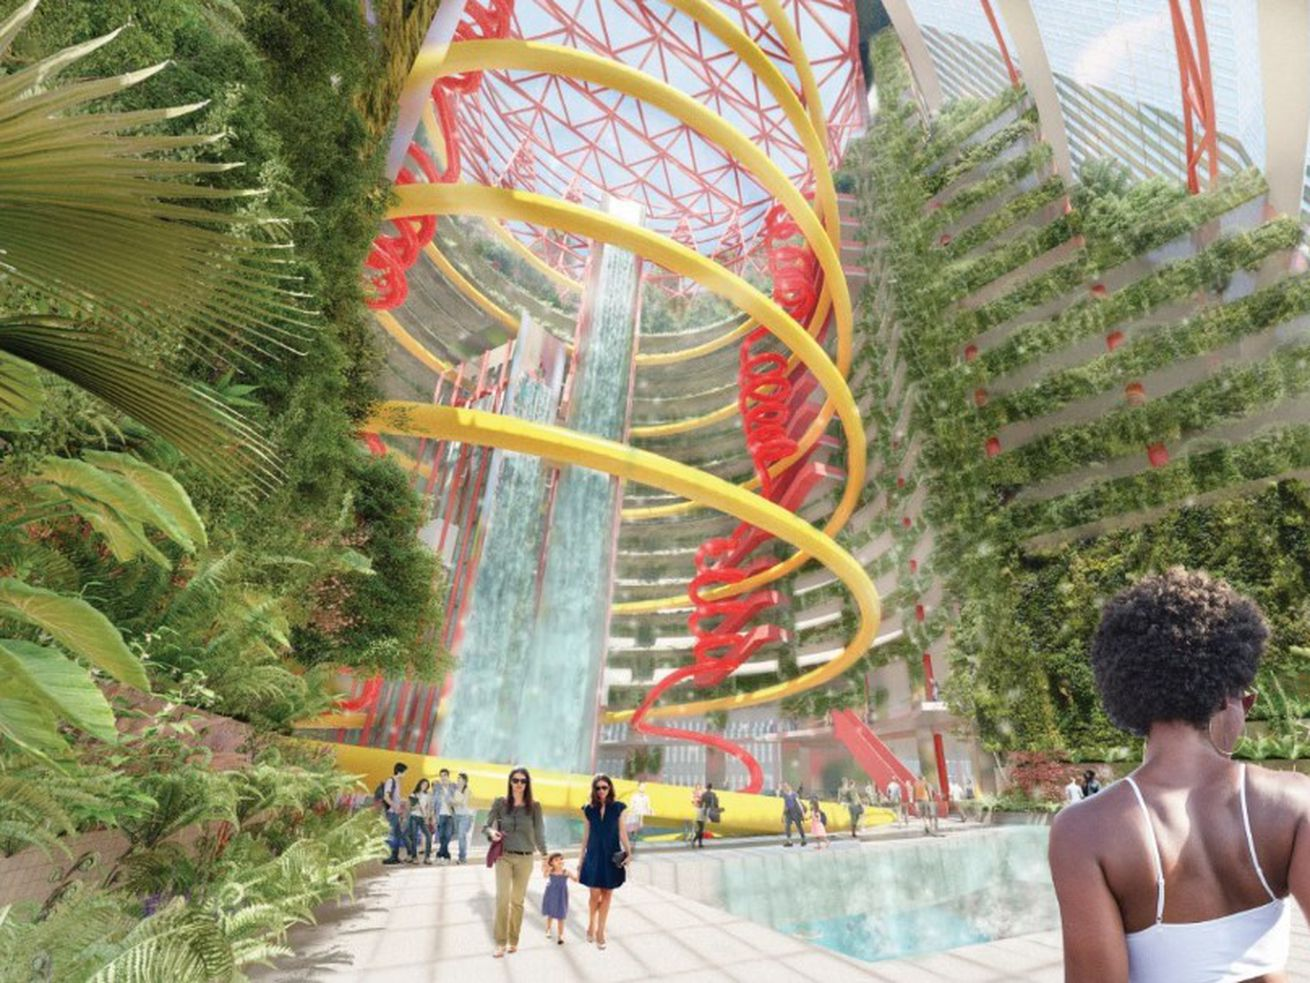 Artwork from a proposal by Perkins & Will staffers that imagines the Thompson Center with an indoor waterpark and monumental waterfalls.